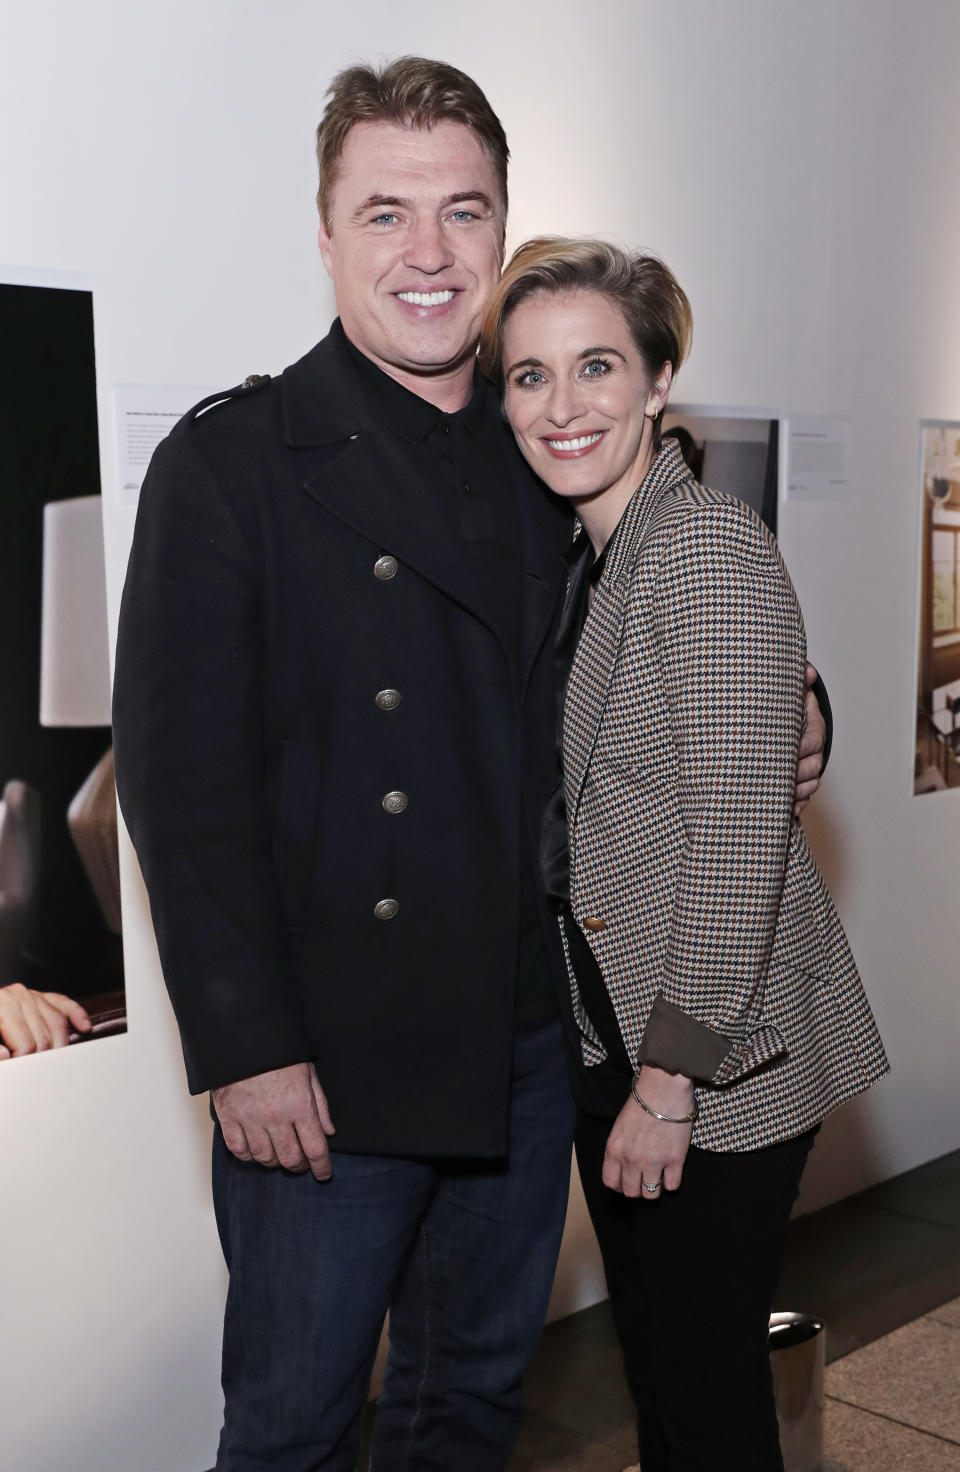 The Line Of Duty star is engaged to actor, producer, writer and radio host Jonny Owen. (Getty Images)